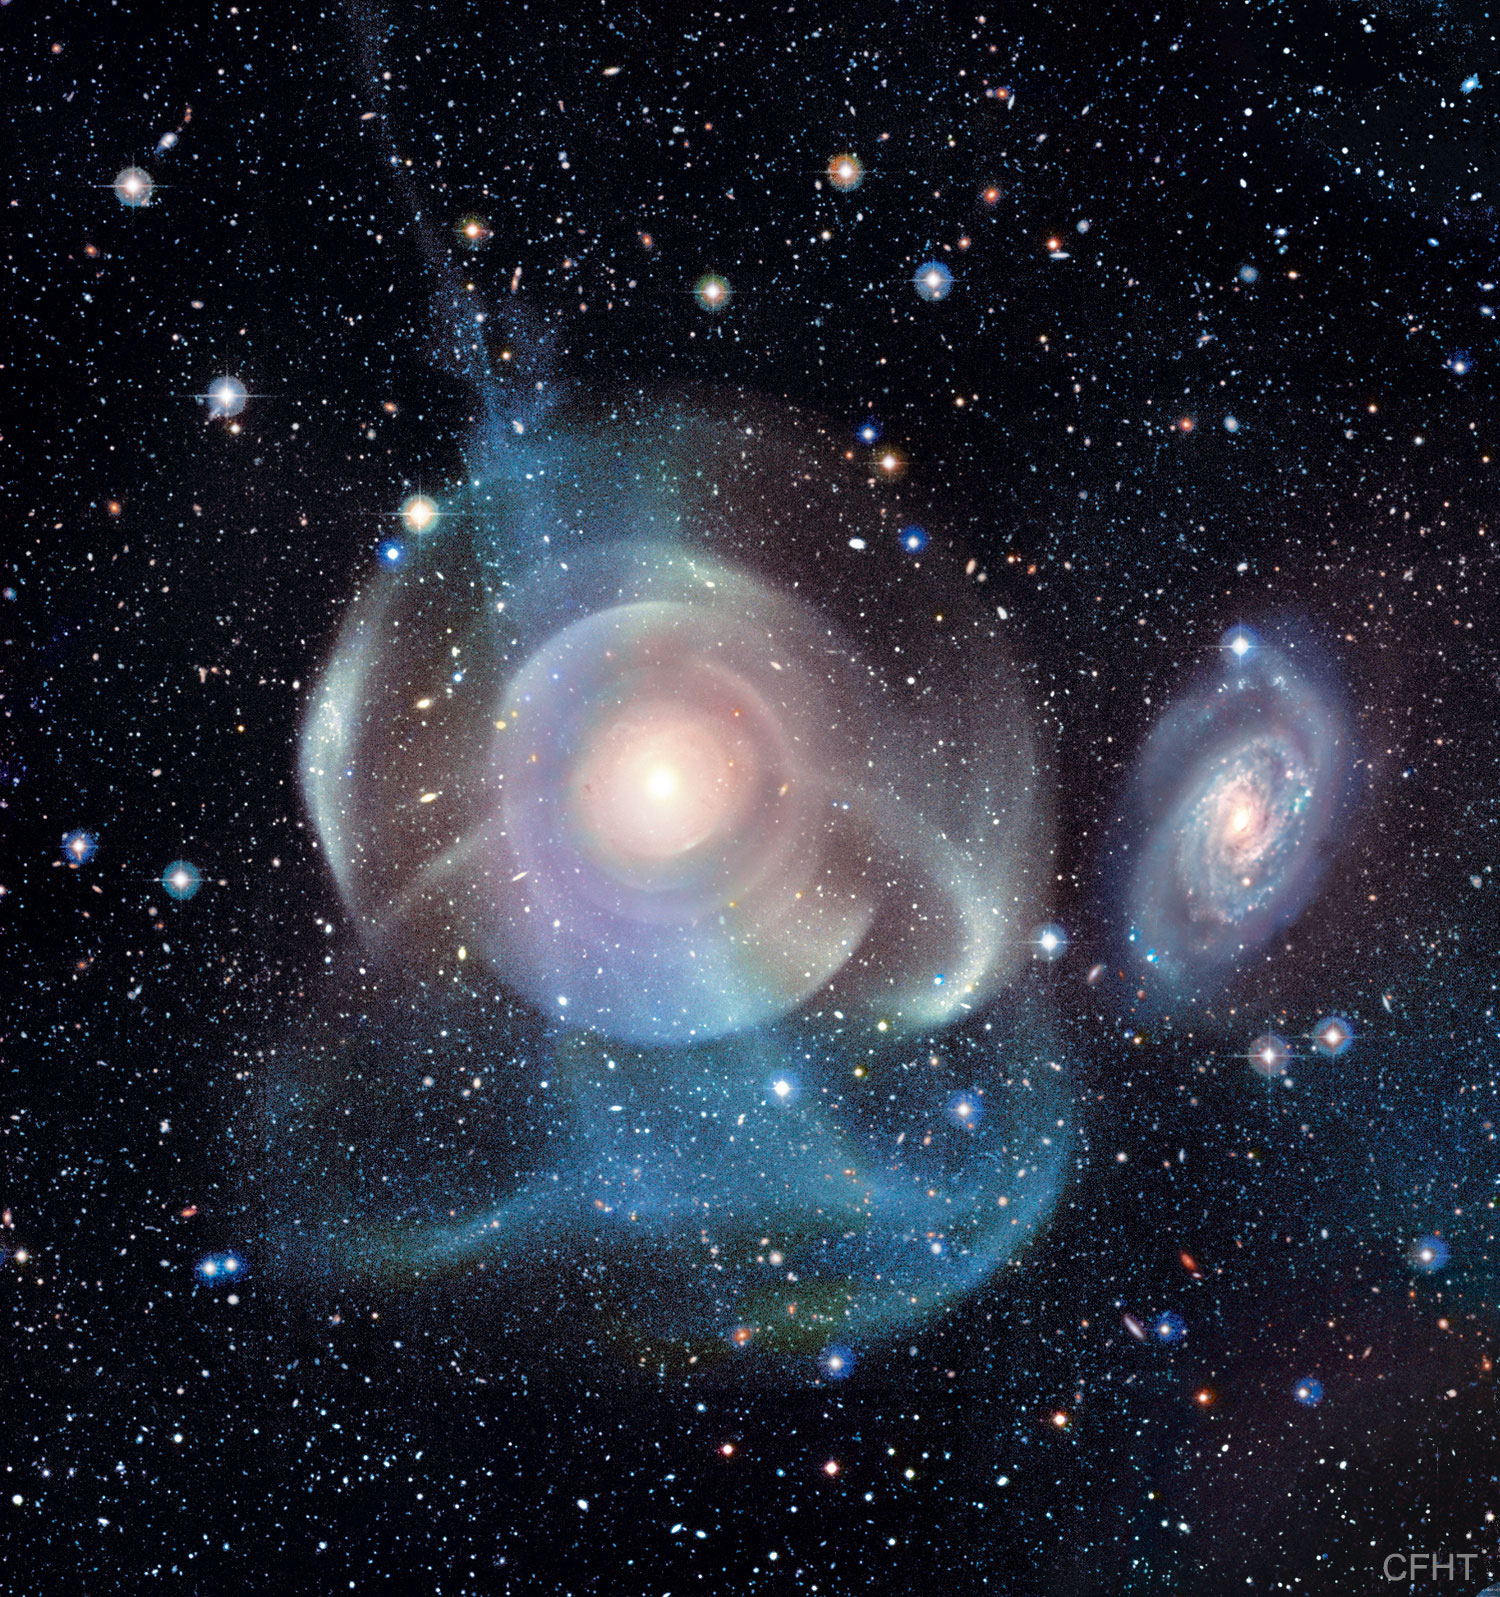 Galaxy NGC 474: Shells and Star Streams